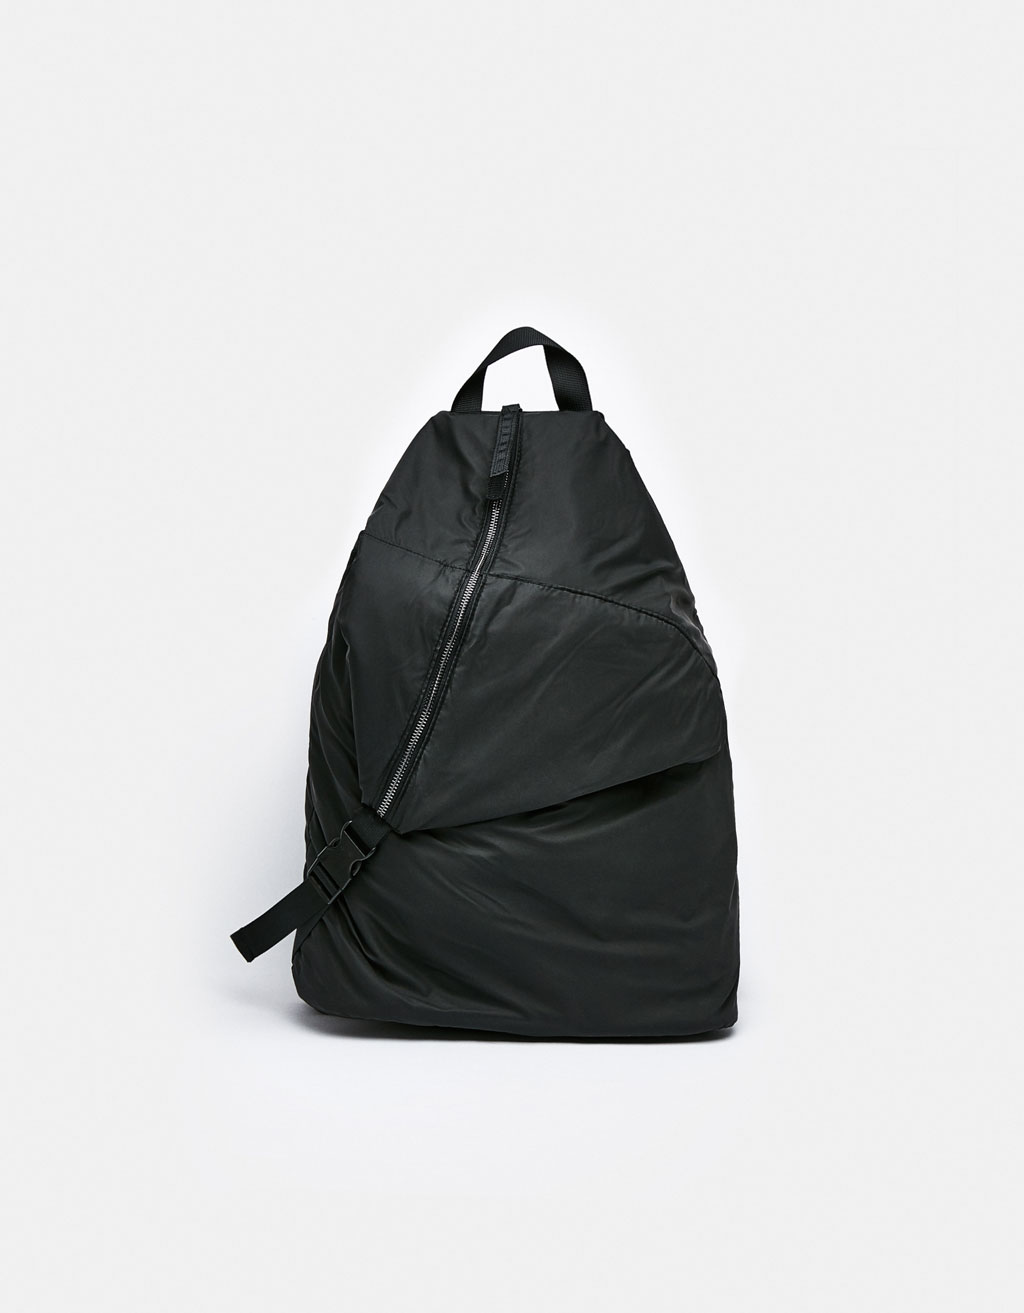 Asymmetric backpack